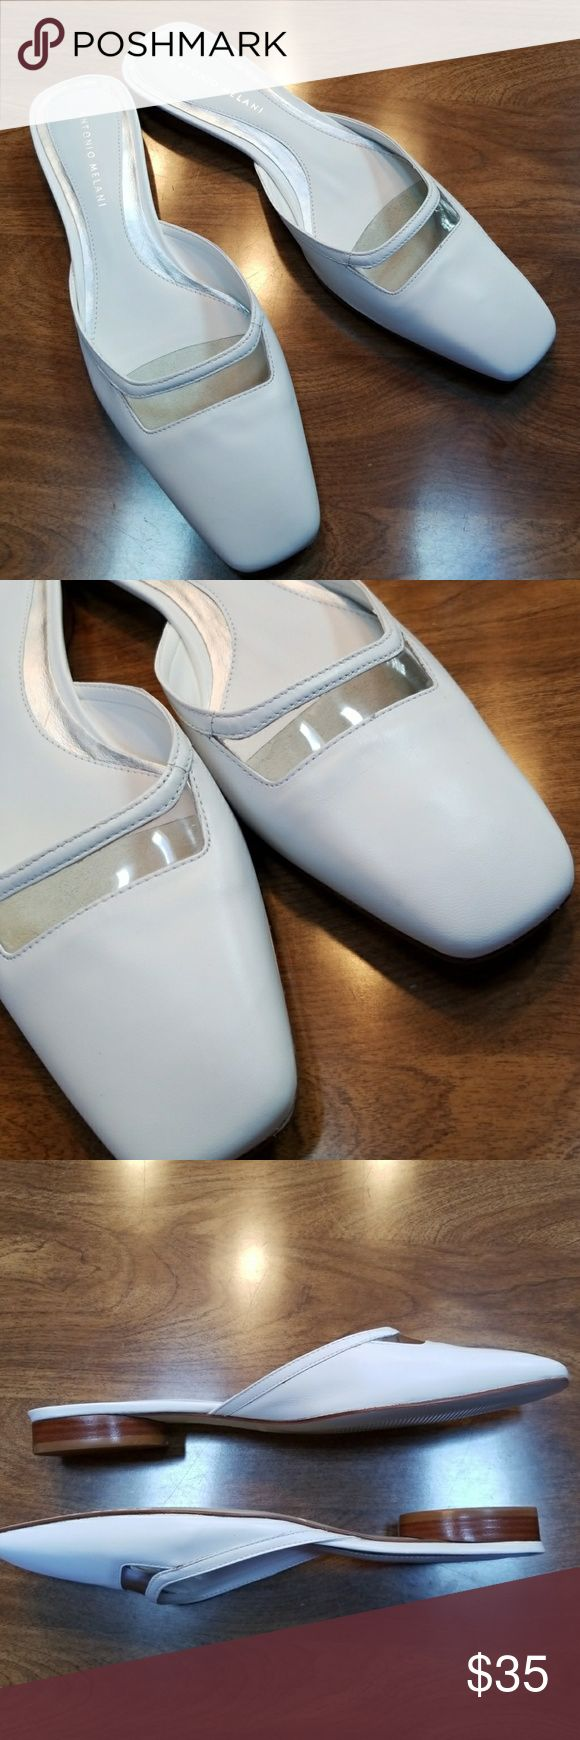 Antonio Melani White Kitten Heel Slip Ons These Shoes Are NEW and have Never Been Worn !   Fashion and Comfort in these White Leather slip on Antonio Melani Low Kitten Heel Made In Brazil Square toe Sophisticated Clear Peek a boo accent on top  Didi Model Glove fit Size 9 M  ✔BUNDLE UP FOR SAVINGS ✔ Antonio Melani Shoes Flats & Loafers